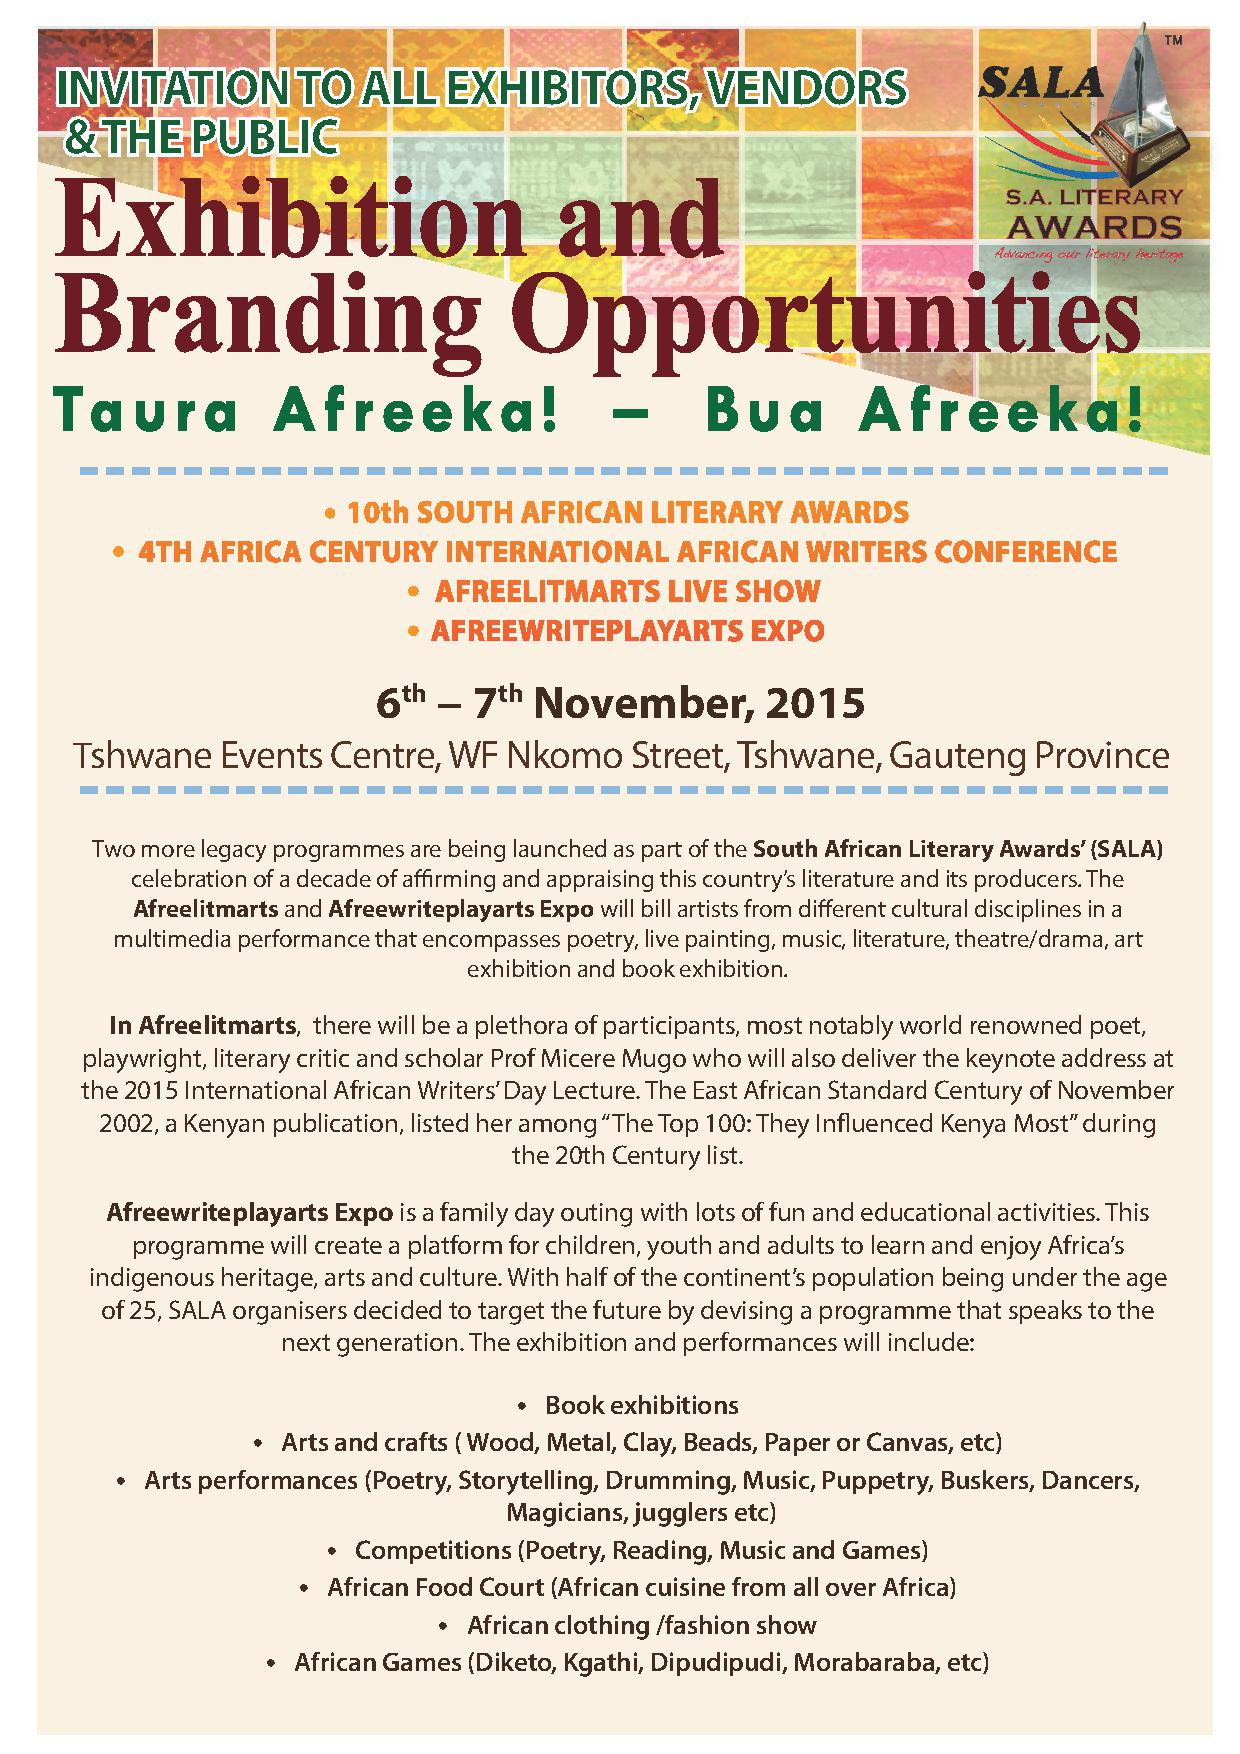 INVITATION TO ALL EXHIBITORS - the wRite associstes